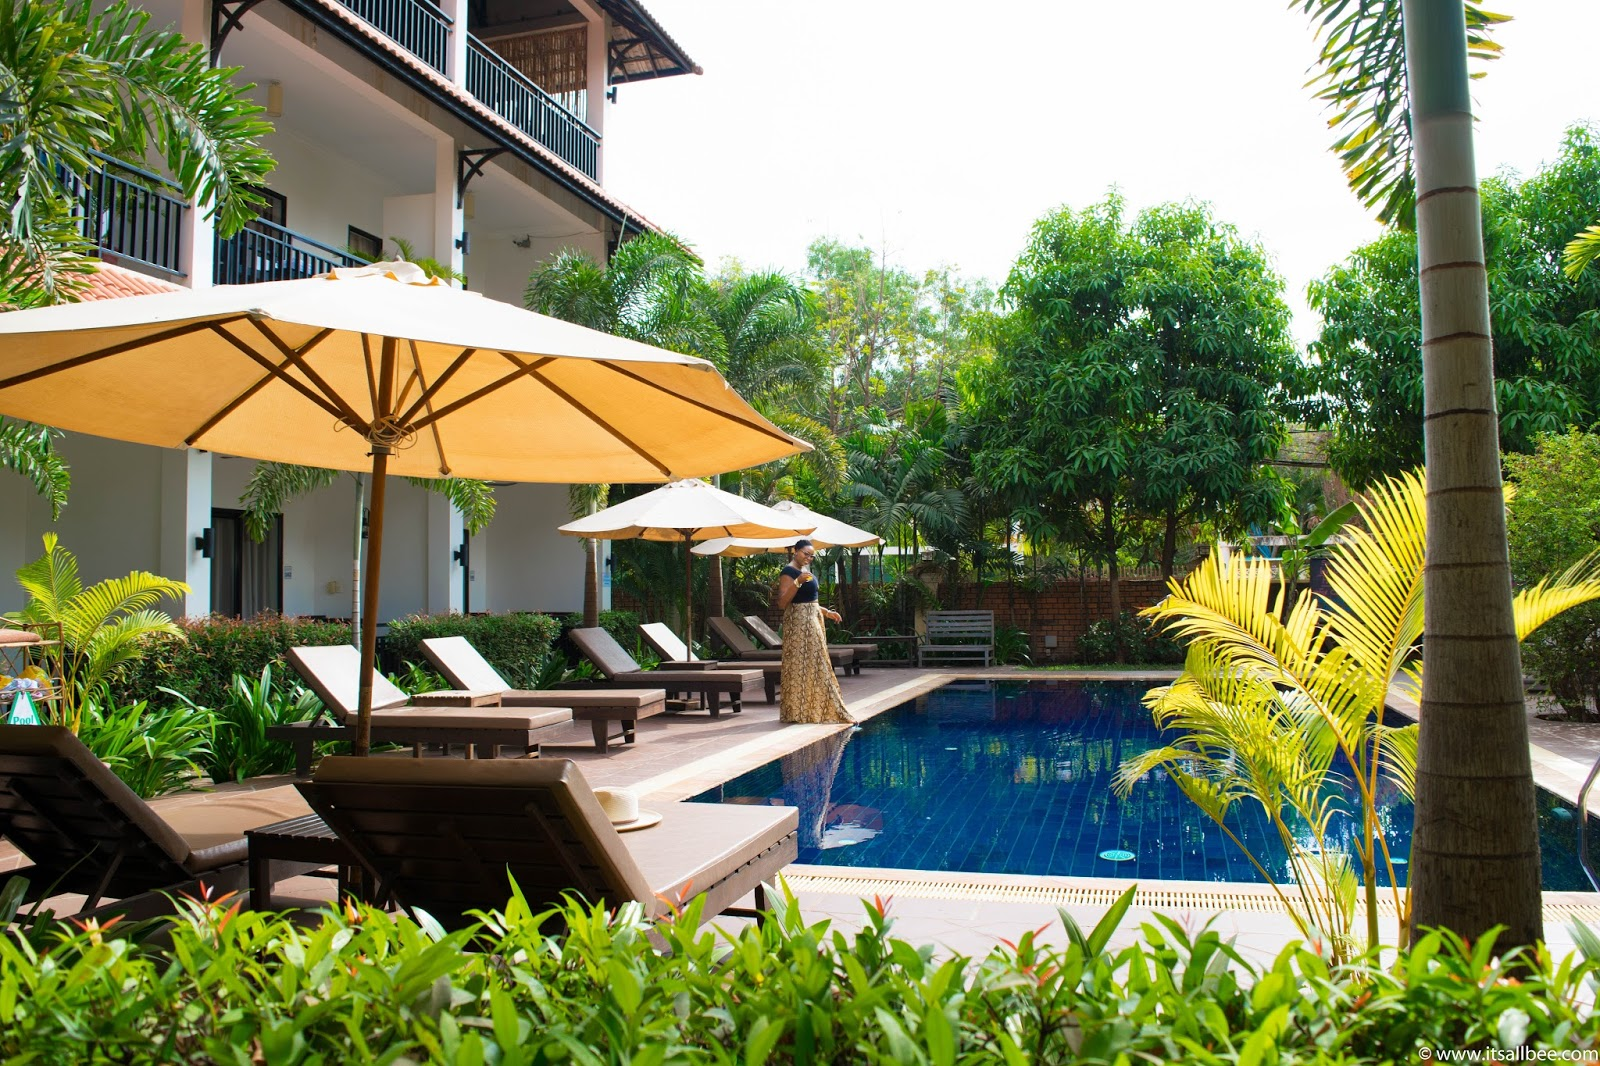 Cambodia | Where To Stay In Siem Reap Near Pub Street